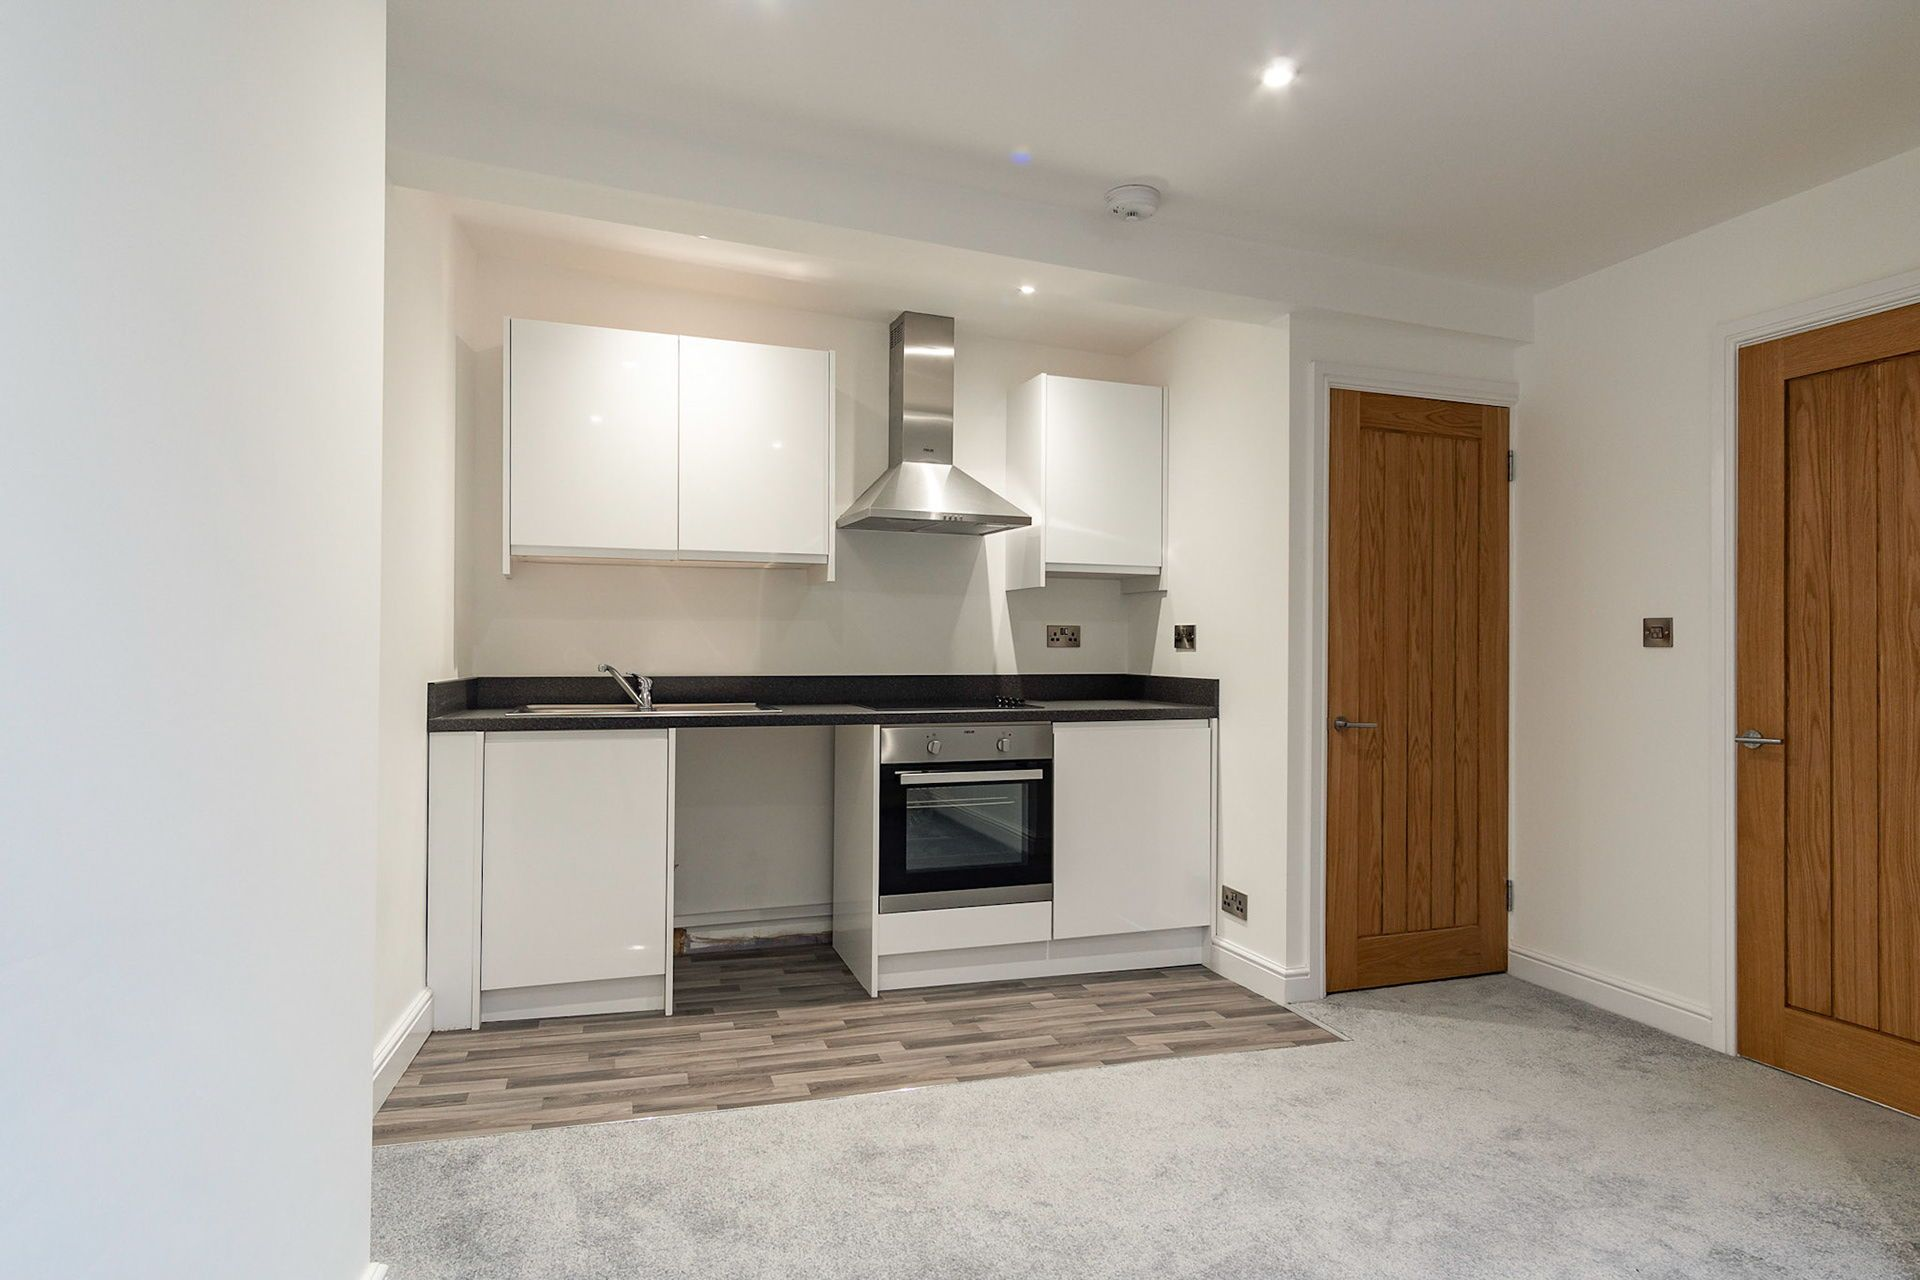 Commercial Property Conversion Case Study Future Group Build In 2020 One Bedroom Flat Commercial Property One Bedroom